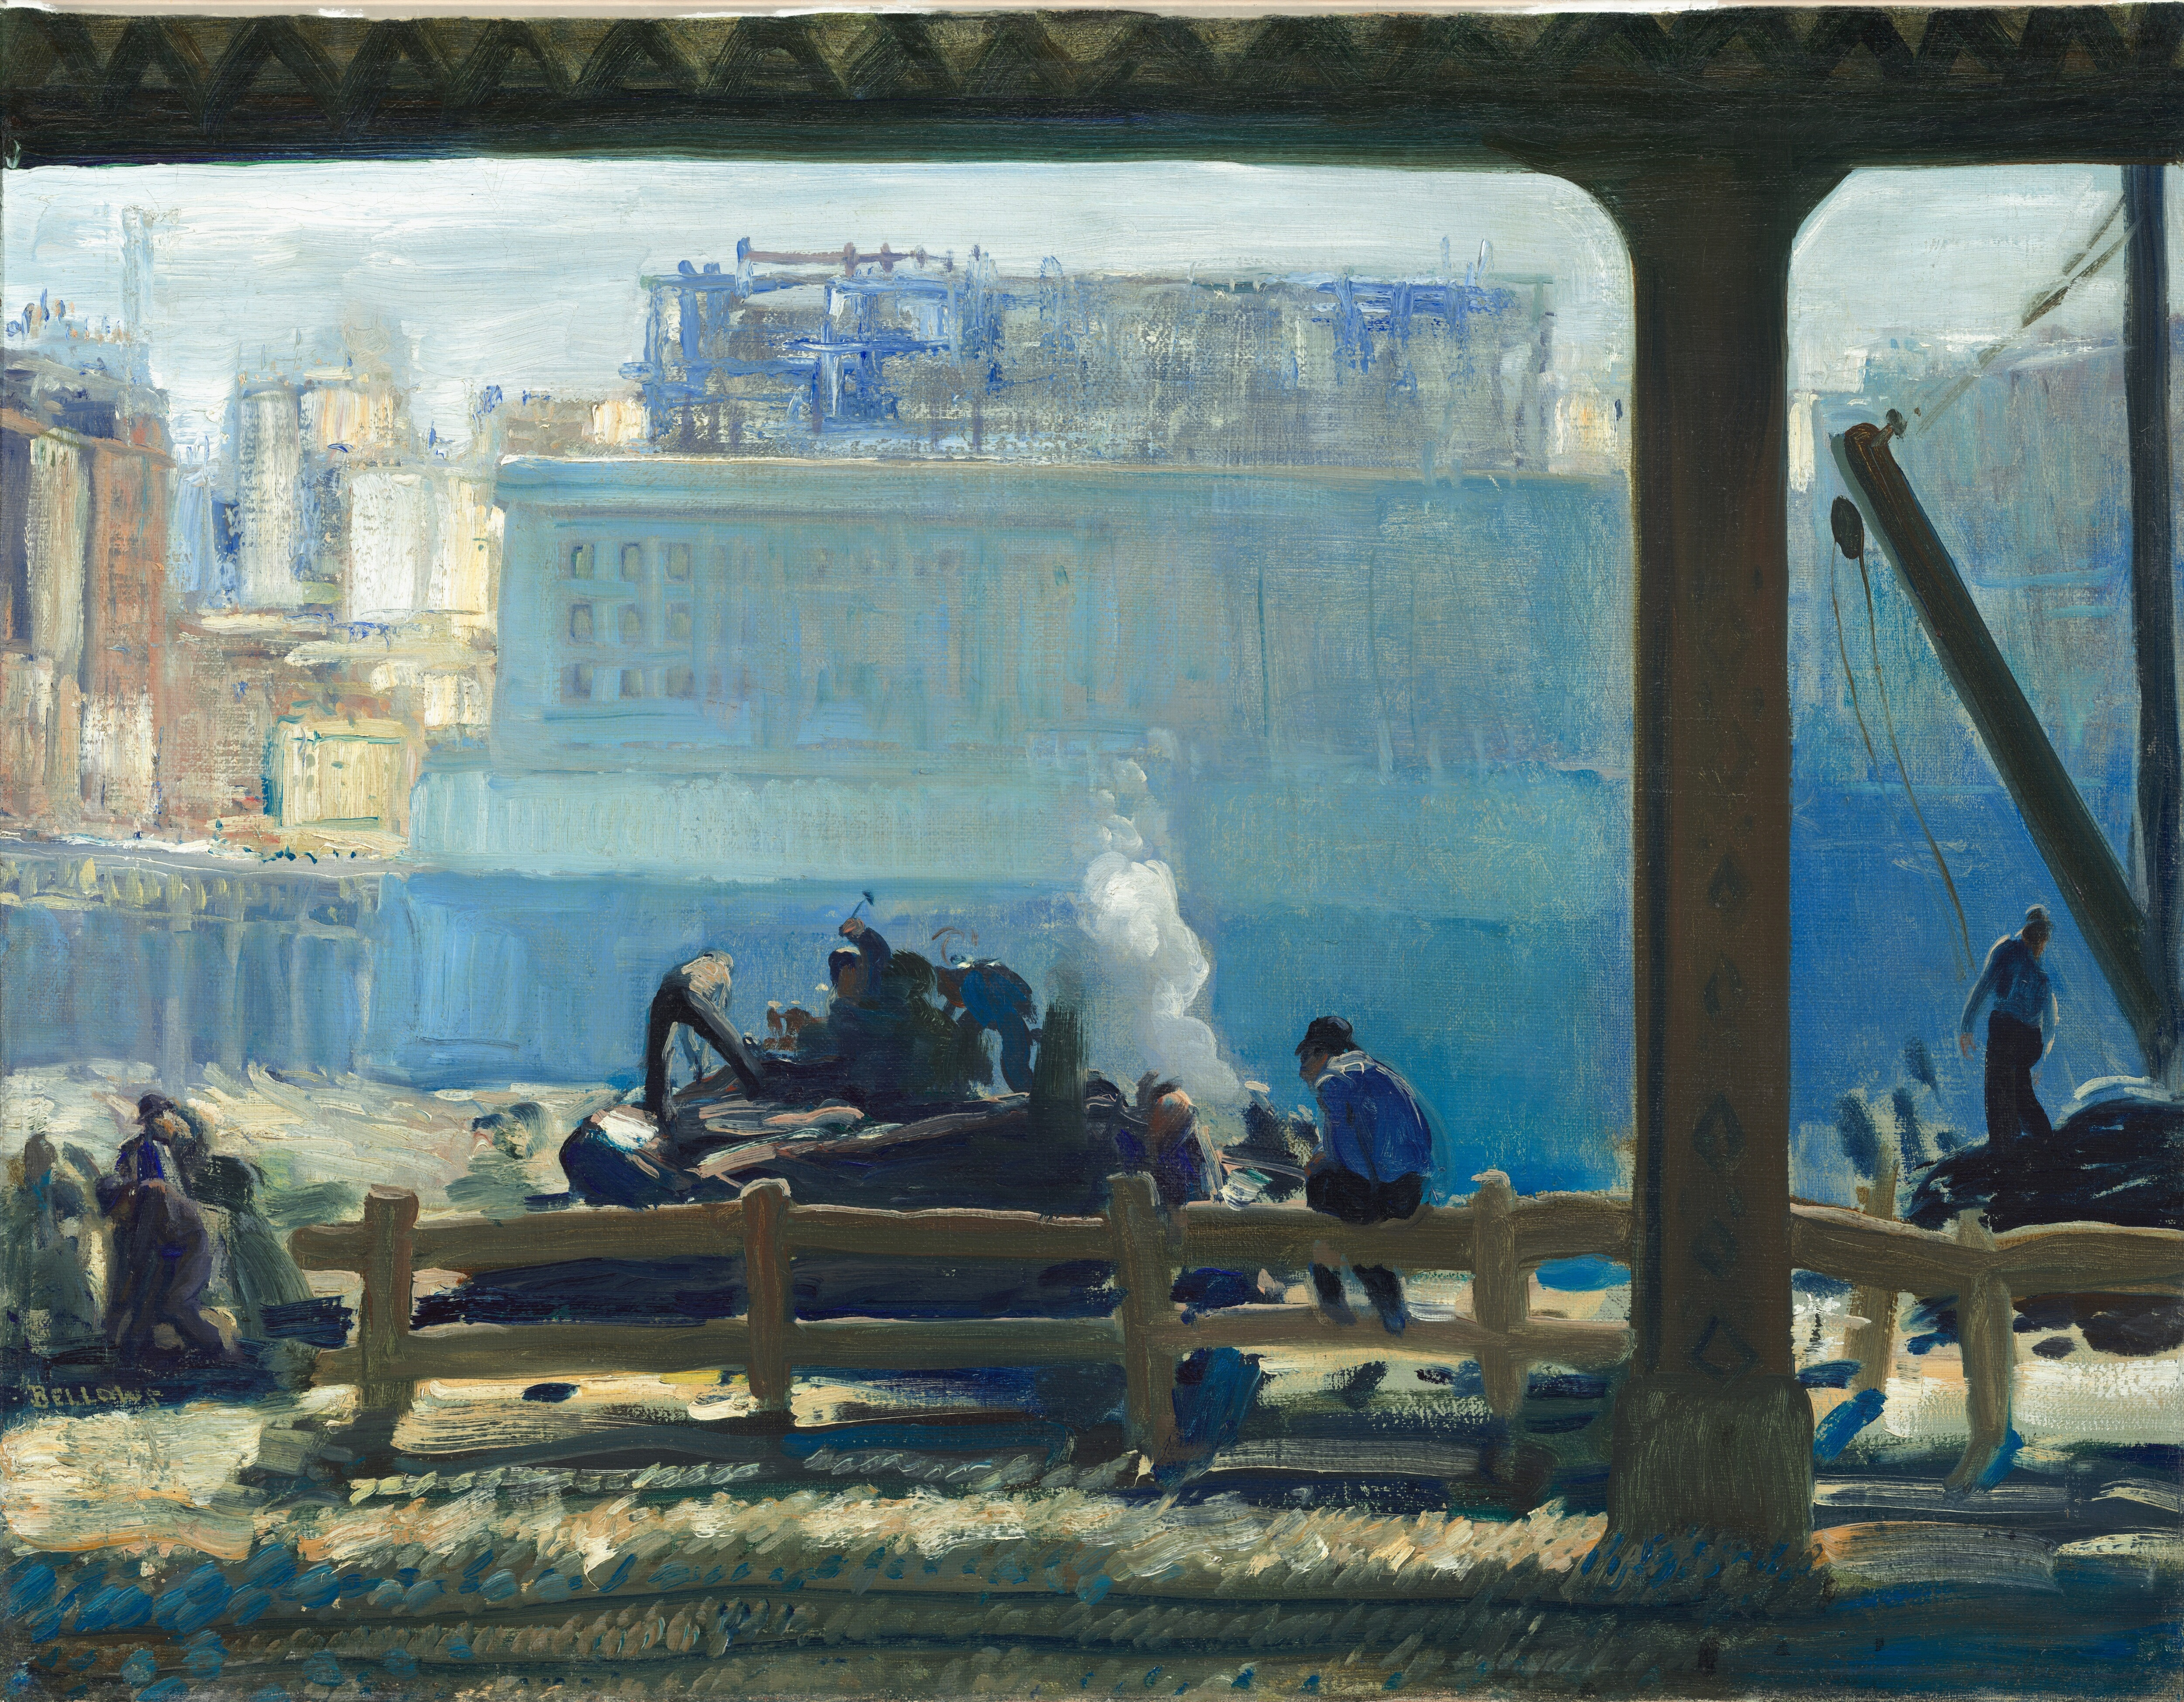 Biography of George Wesley Bellows